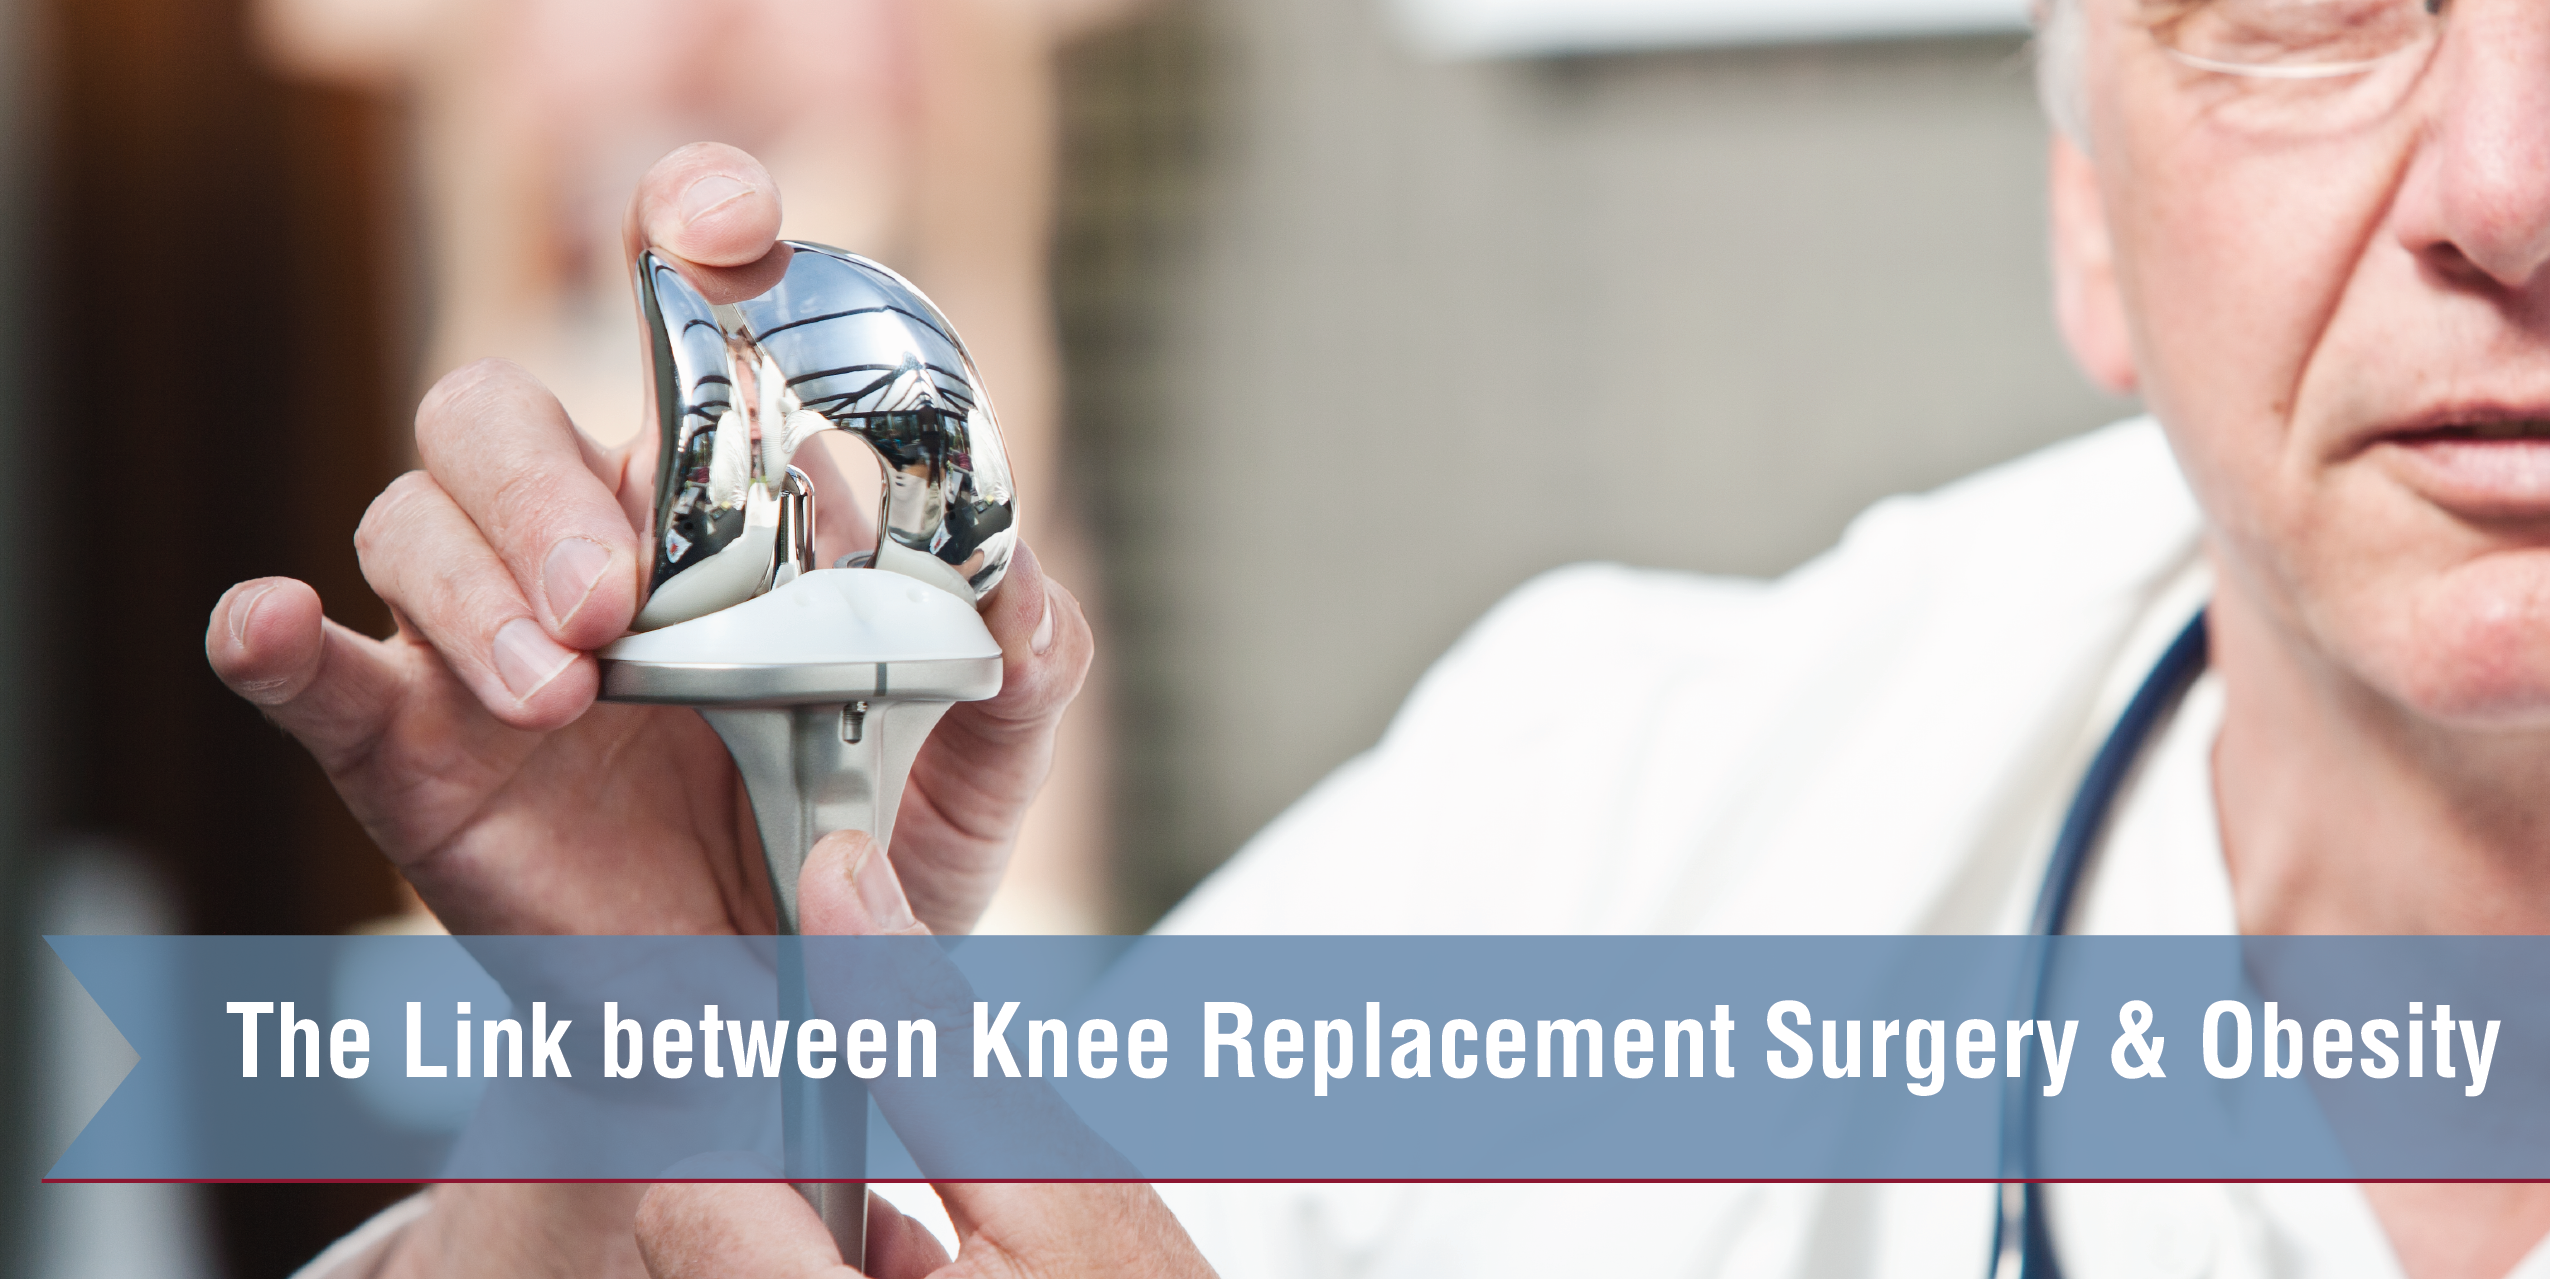 The Link Between Knee Replacement Surgery & Obesity